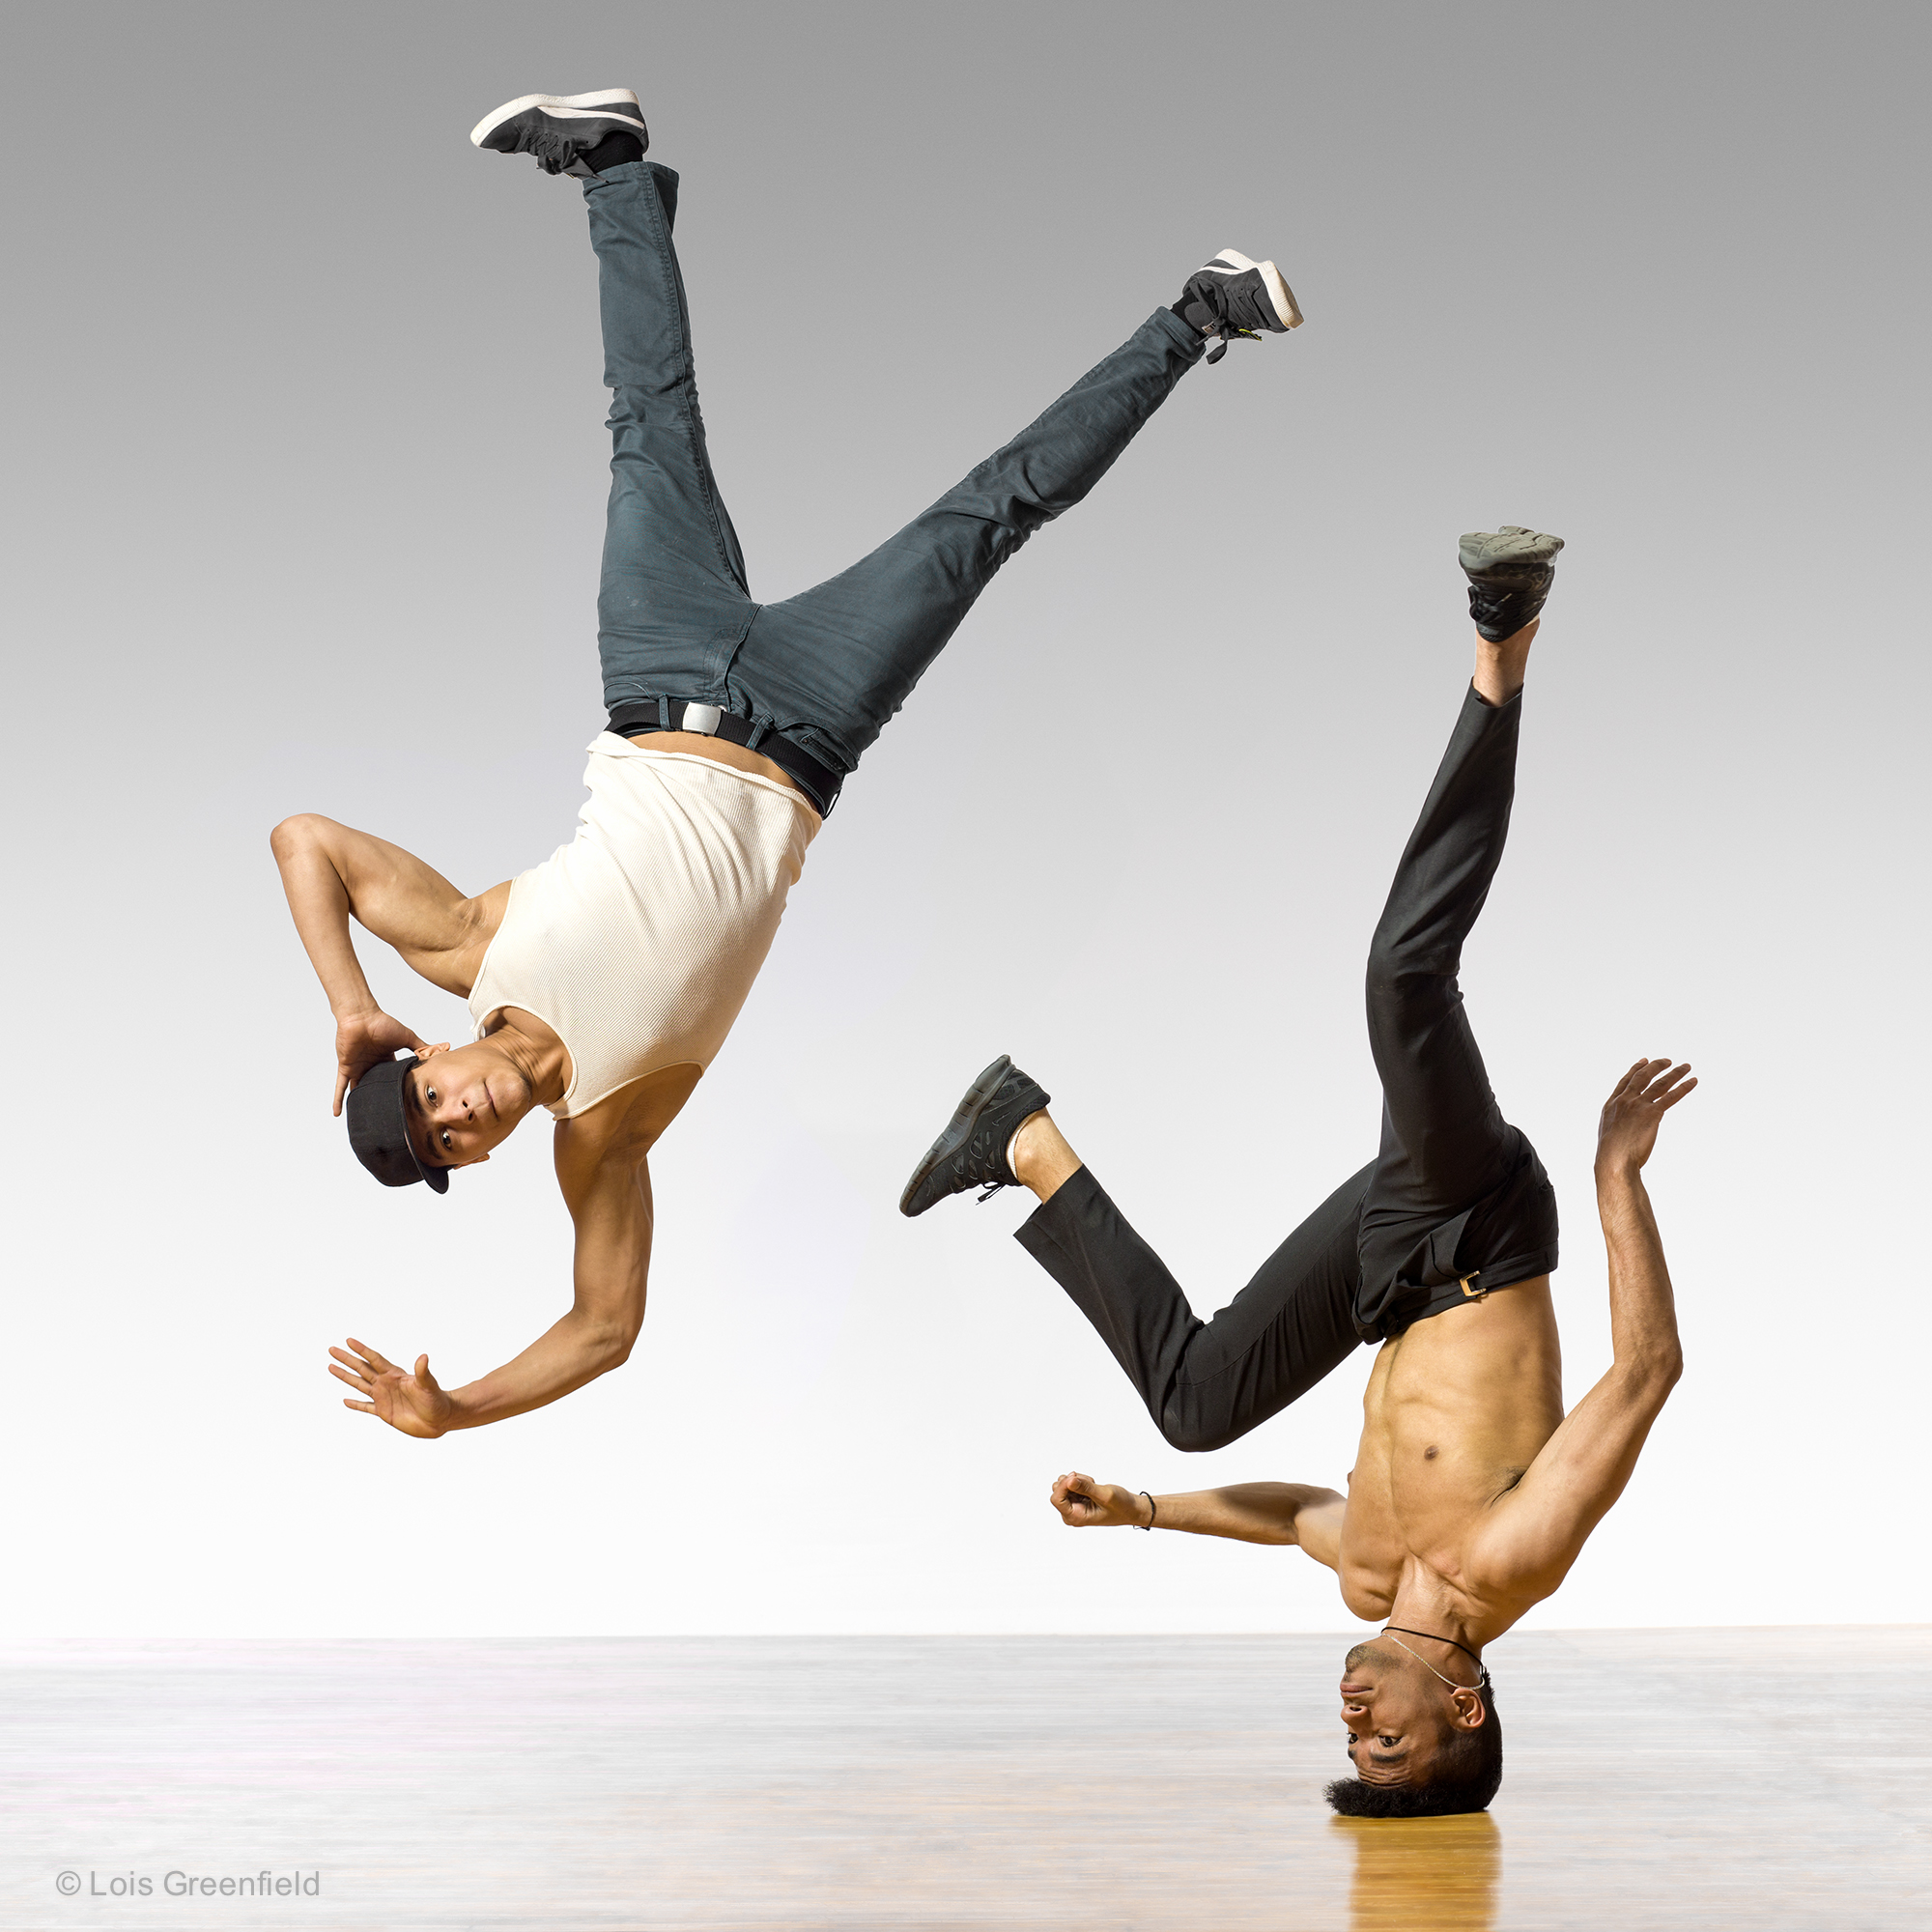 Alexander Hernandes and Gabriel Alvarez, ART OF MOTION